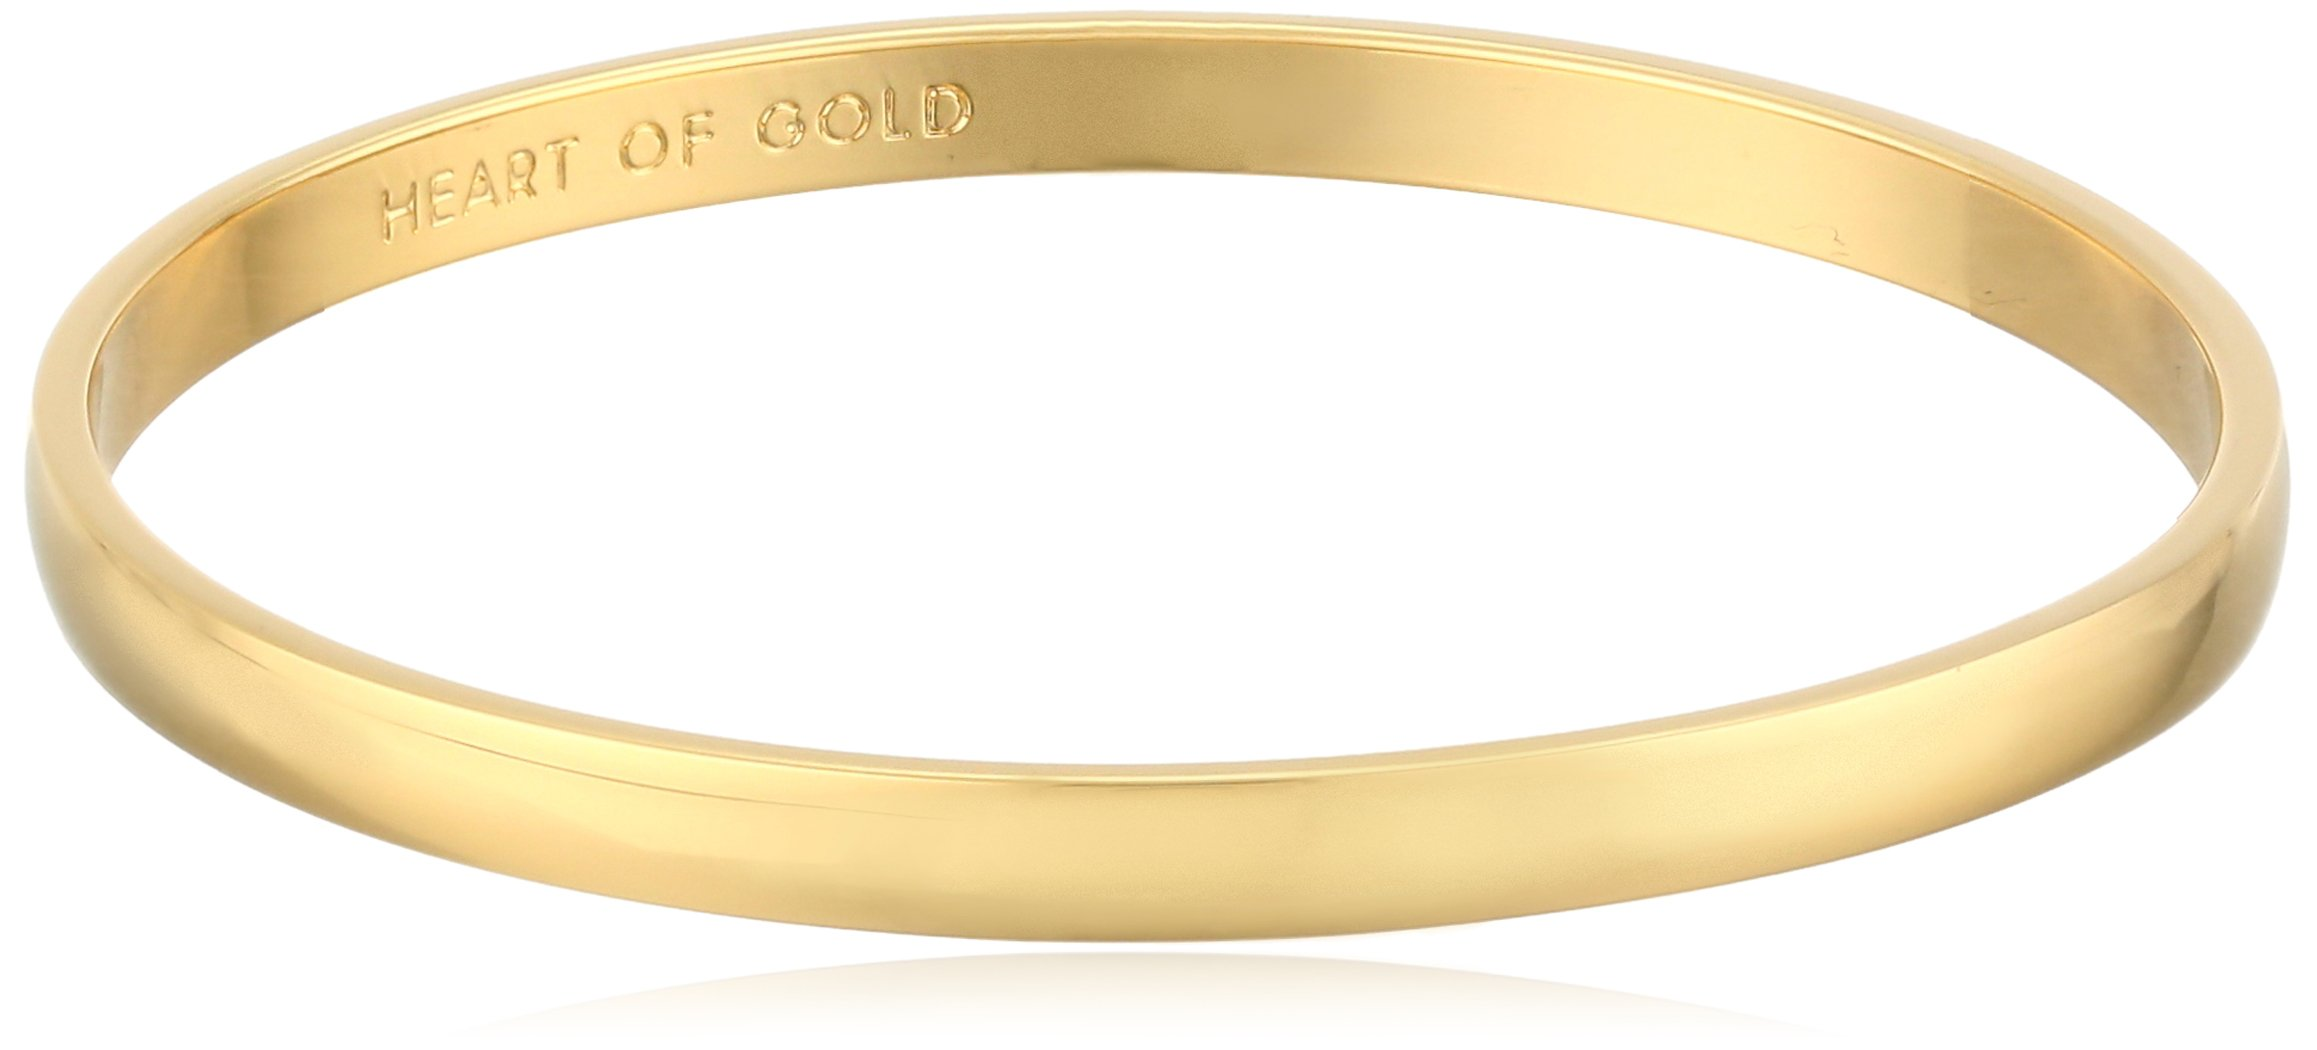 kate spade new york Idiom Collection ''Heart of Gold'' Bangle Bracelet, 7.75''